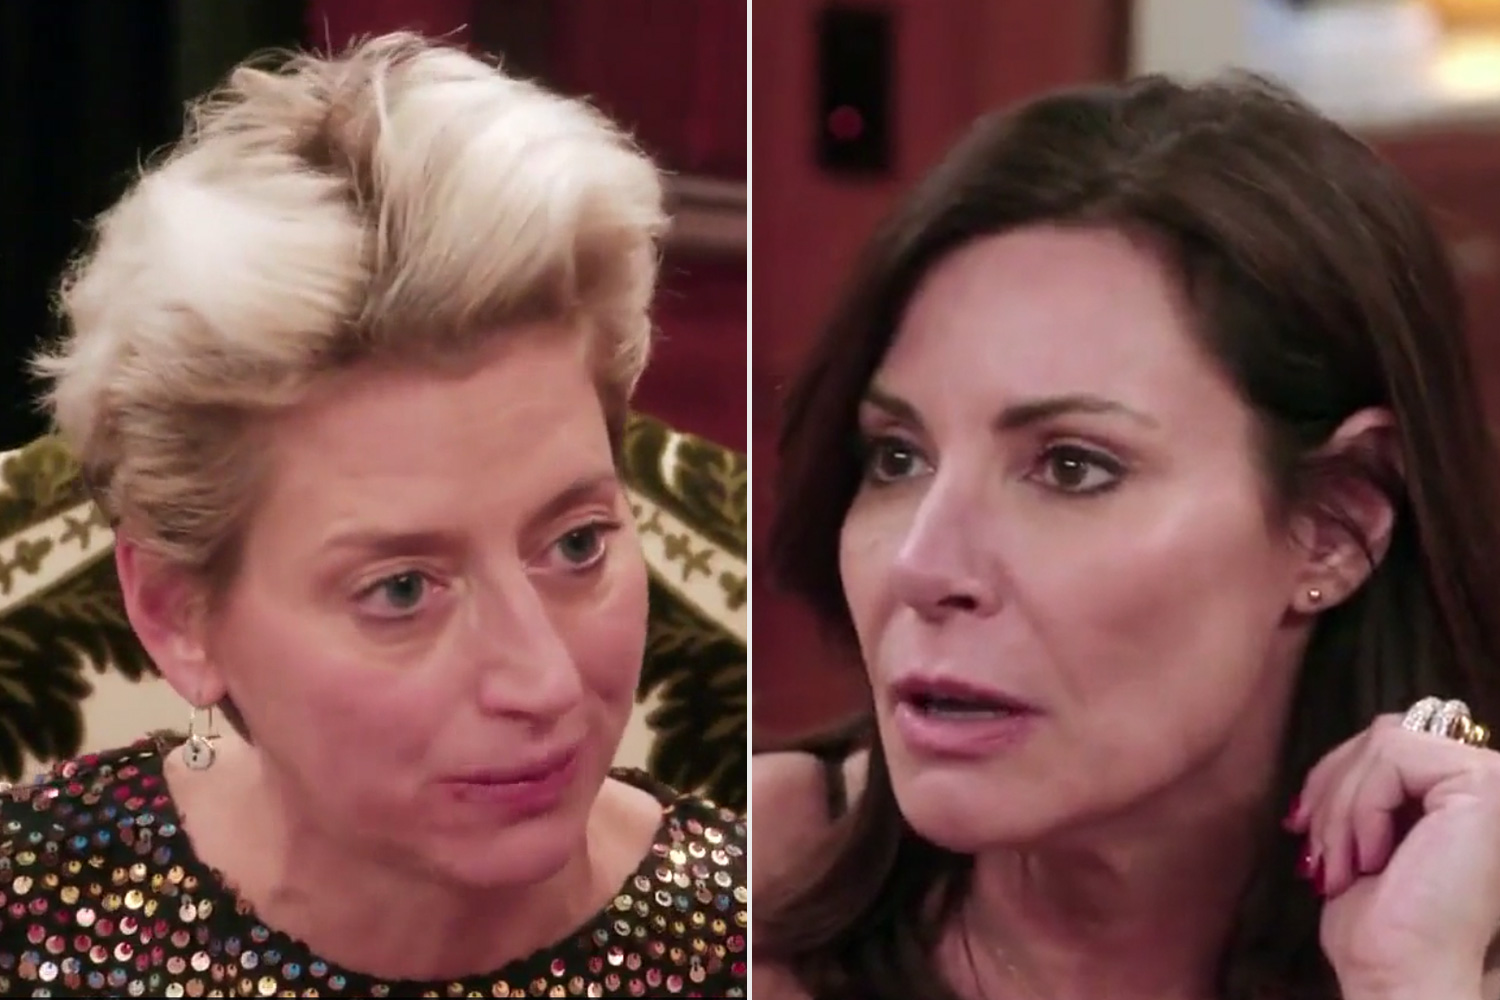 Dorinda Medley Insults LuAnn DeLessups By Bringing Up Her Mugshot — Then Kicks Her Out Of Her Home After Heated Argument